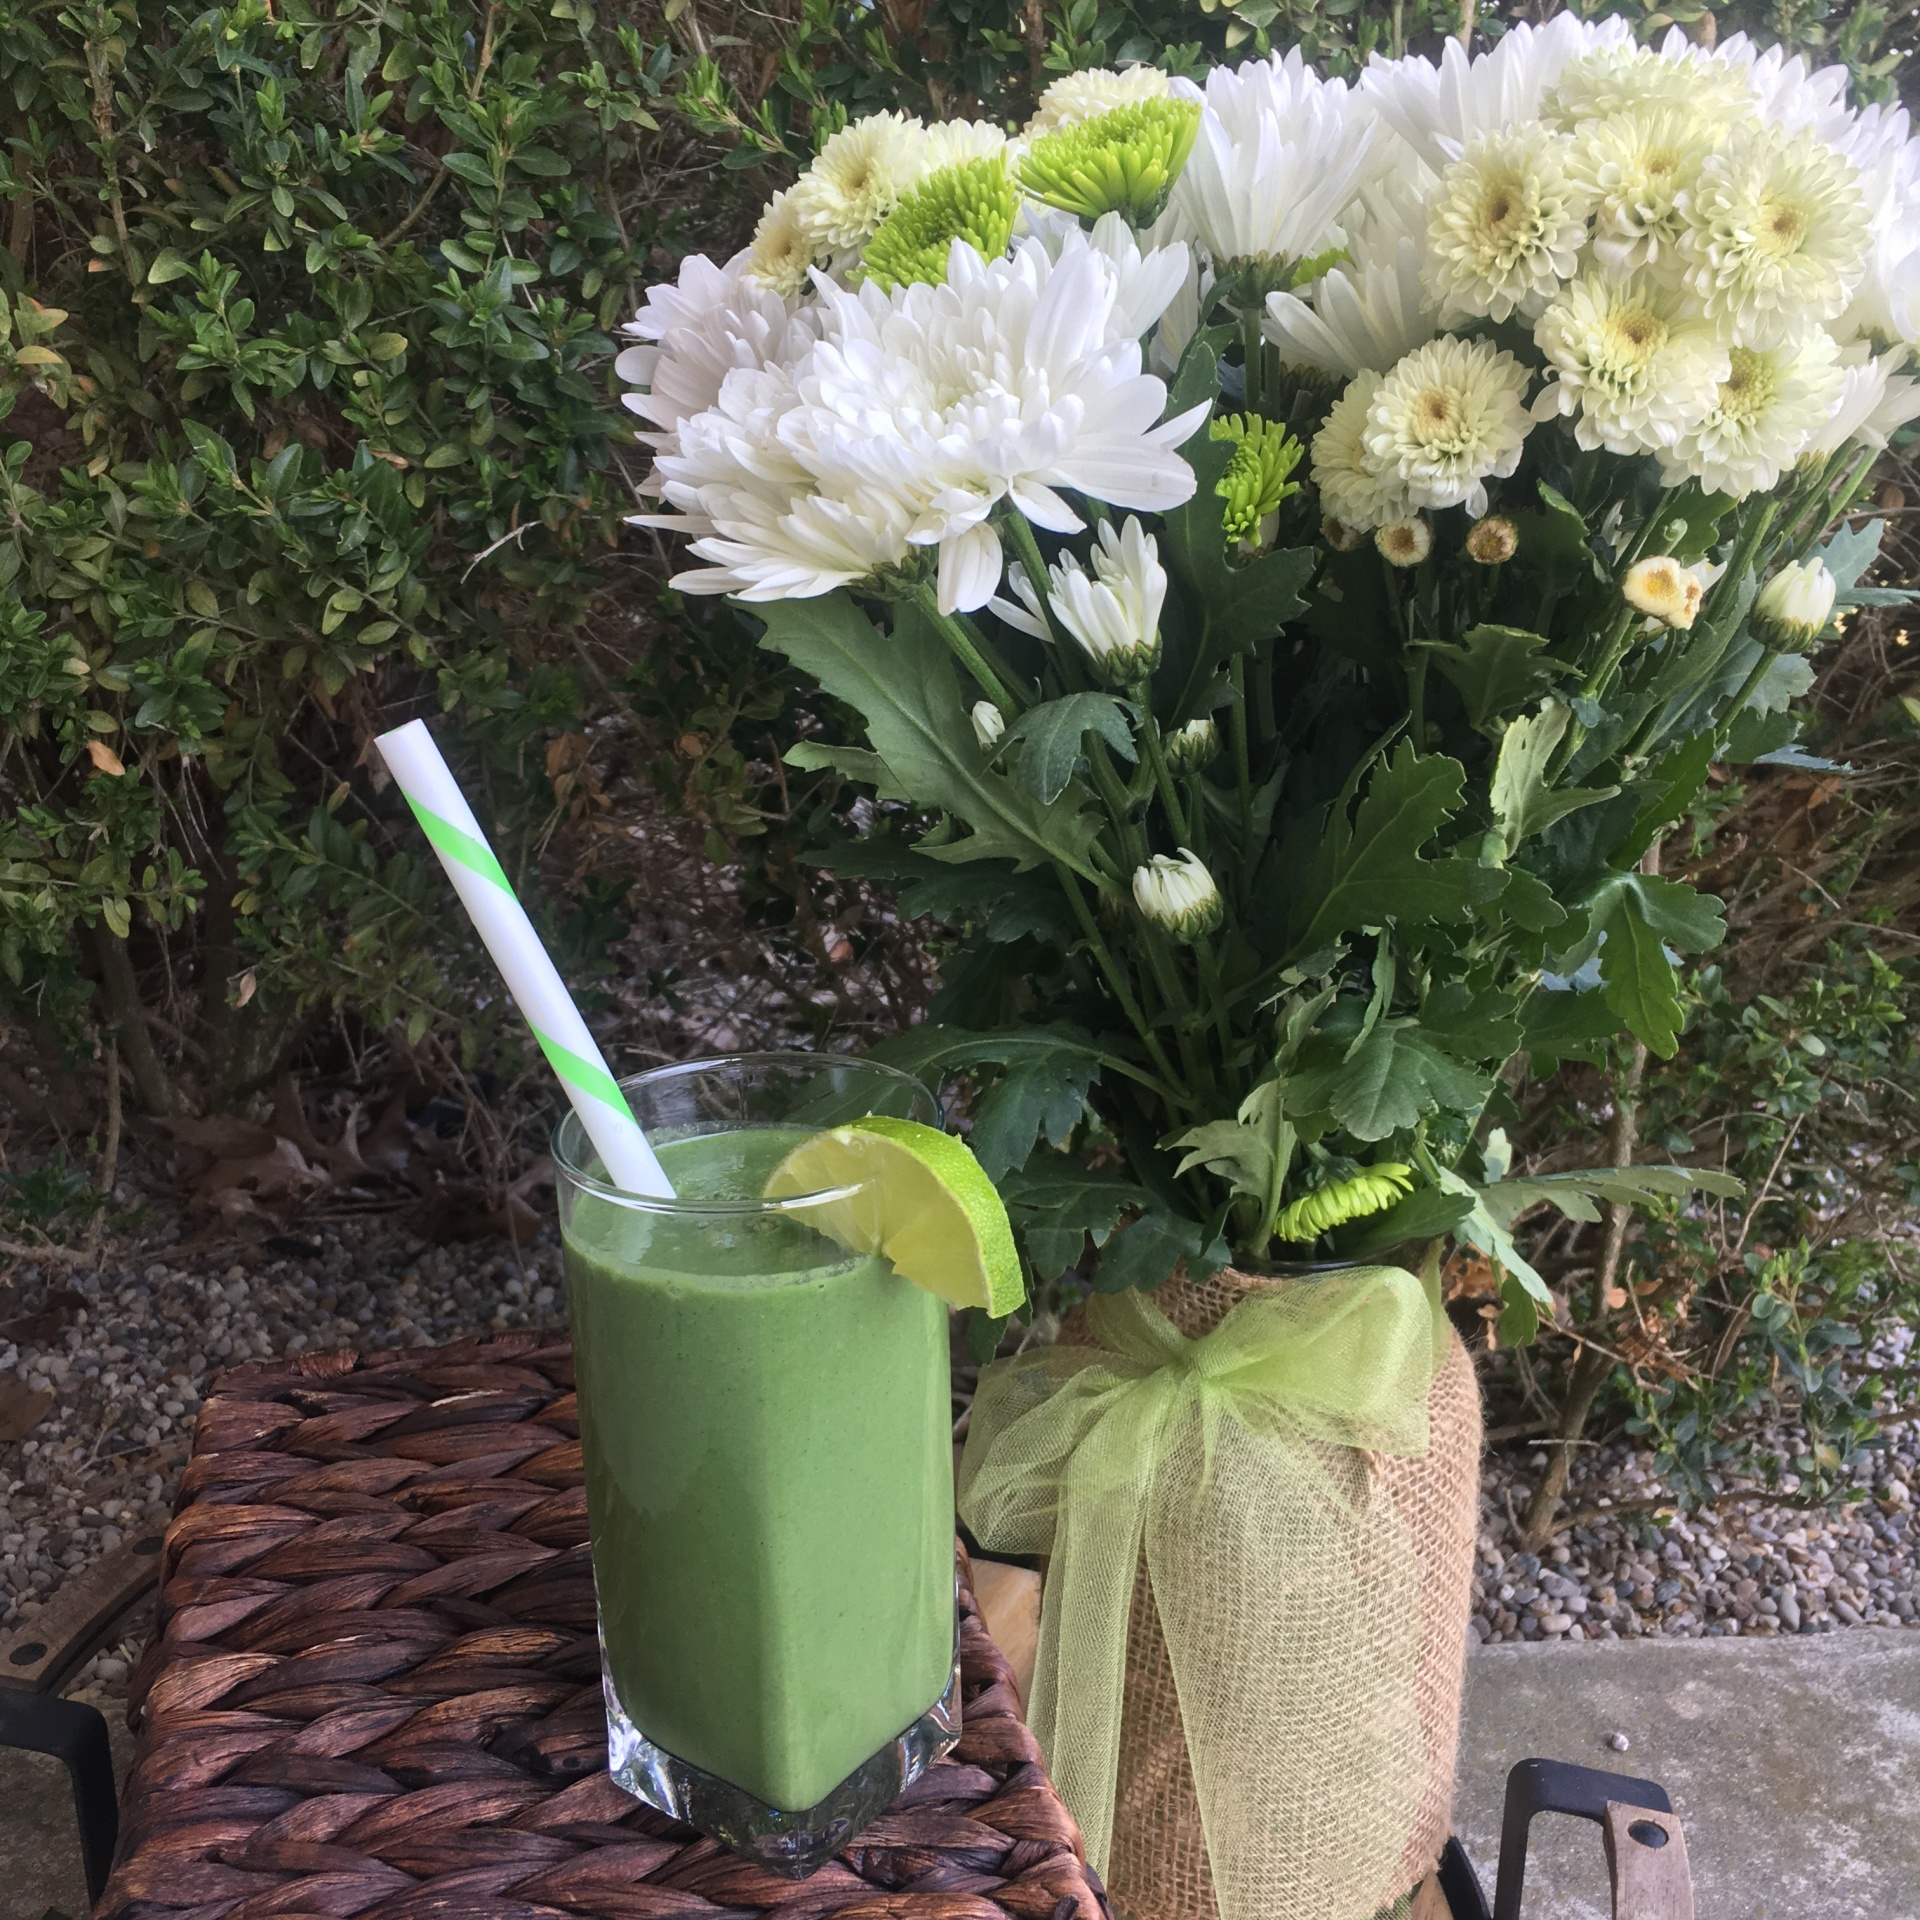 Celebrate Spring with a Green Energy Smoothie